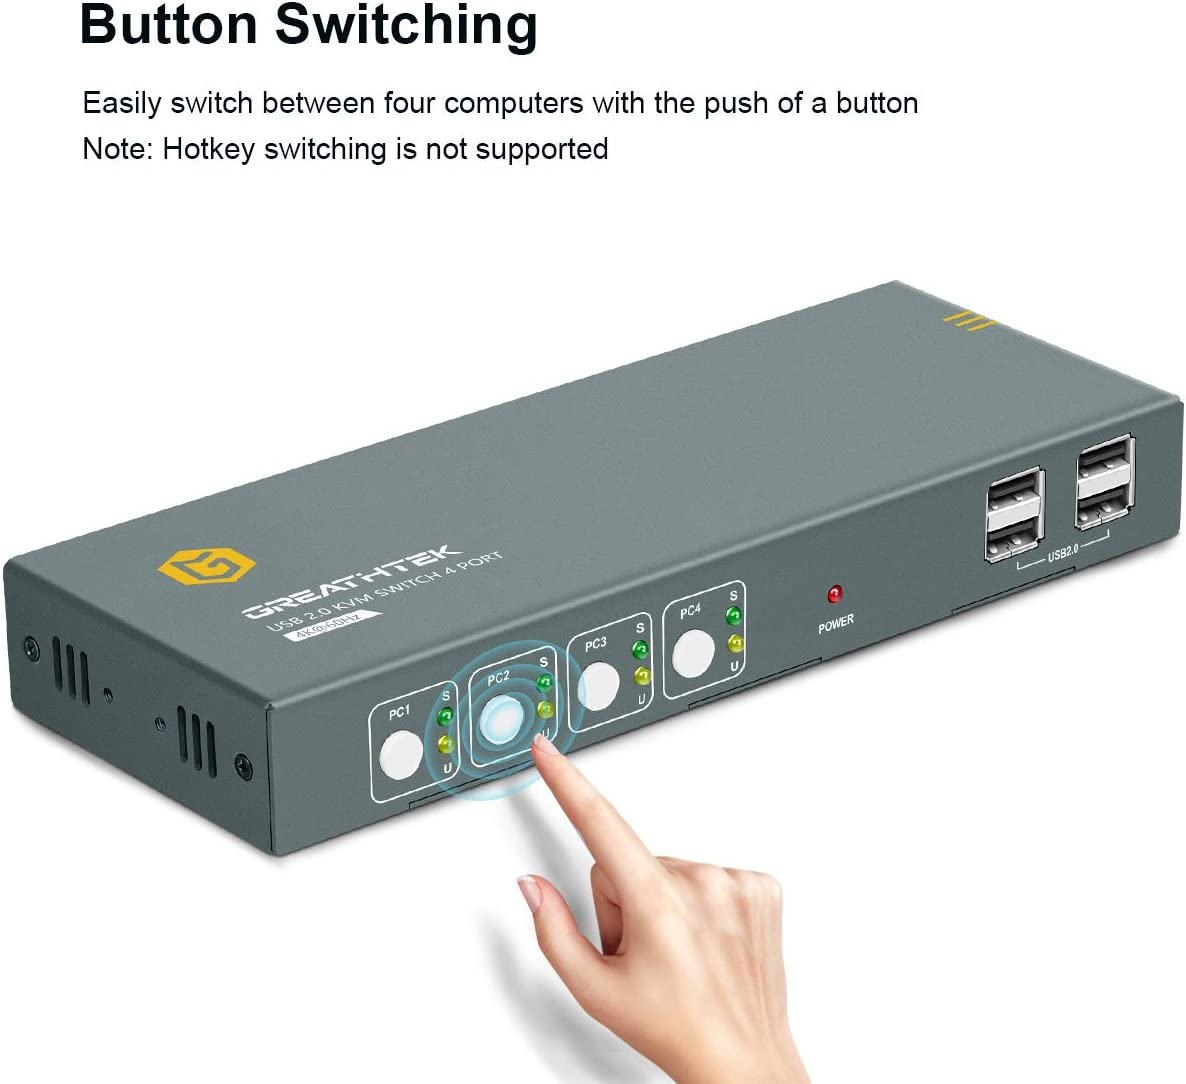 USB KVM Switch HDMI 4 in 1 Out with 4 USB 2.0 Hub Compatible with Most Keyboards and Mouse Button Switch 4 Port HDMI 2.0 KVM Switch 4K@60Hz